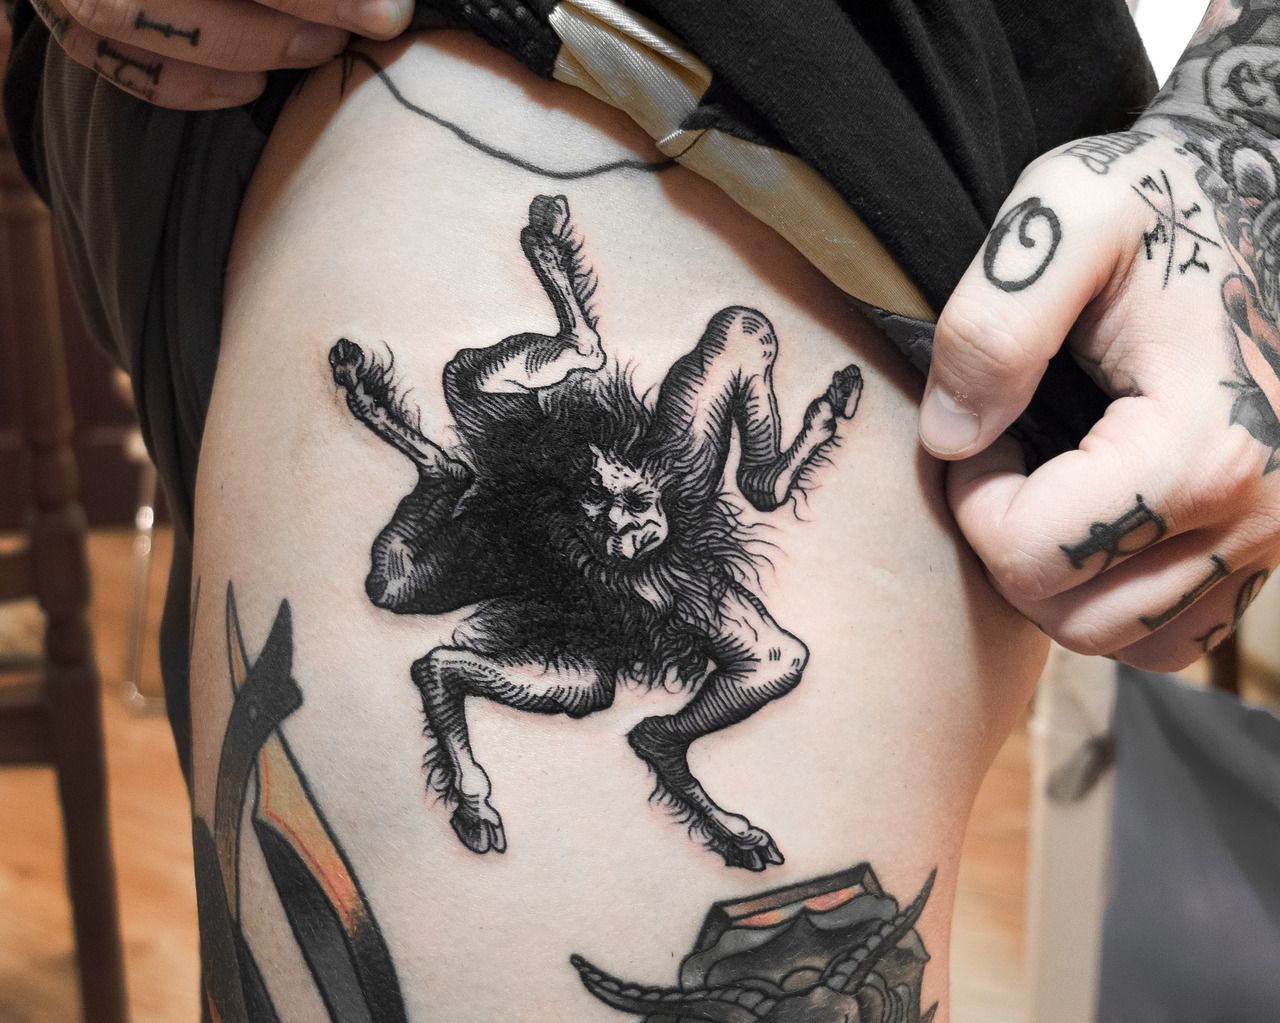 Len Levin - tattoo of the demon Buer, teacher of natural philosophy and herbs